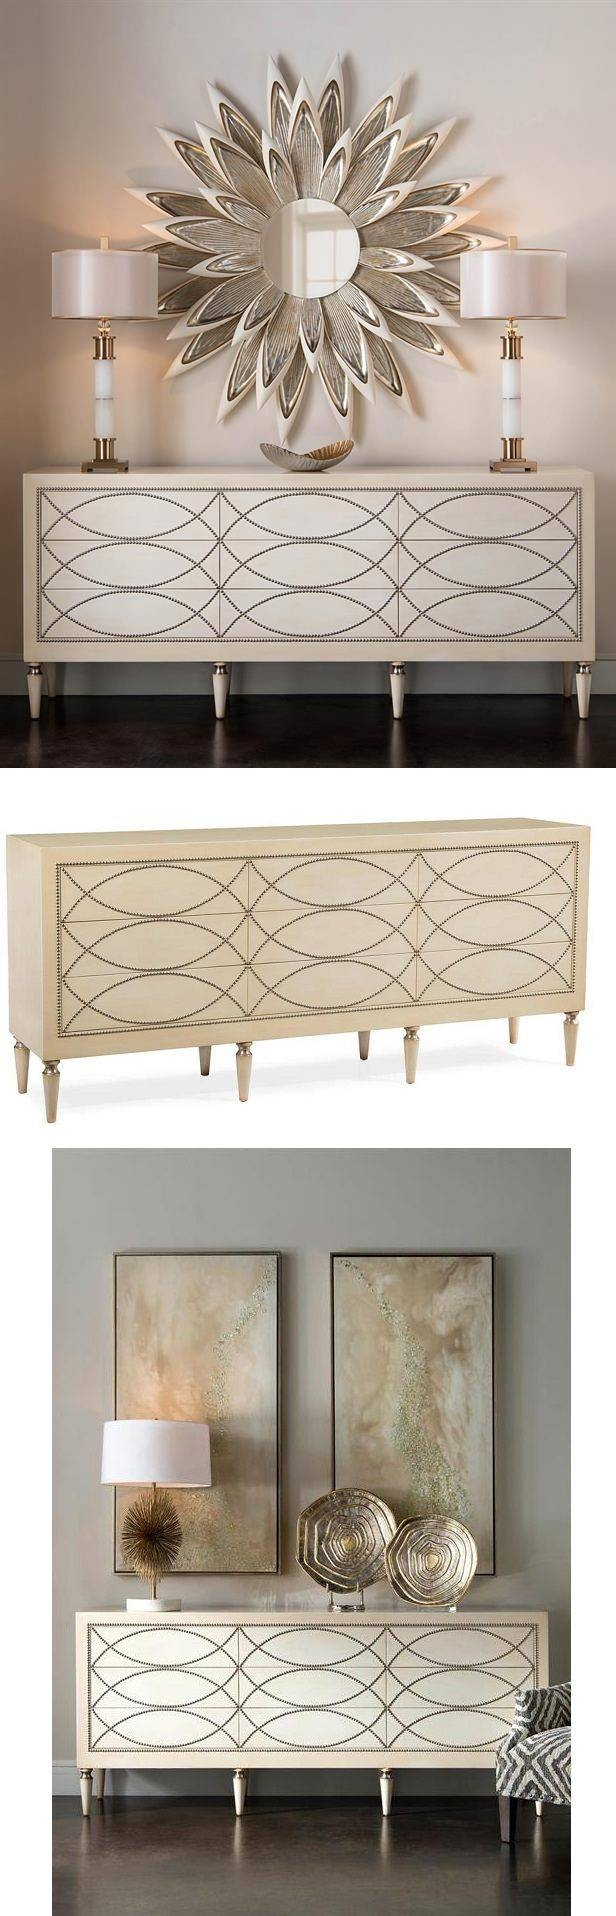 Best 25+ Dining Room Sideboard Ideas On Pinterest | Dining Room regarding Living Room Sideboards (Image 3 of 30)